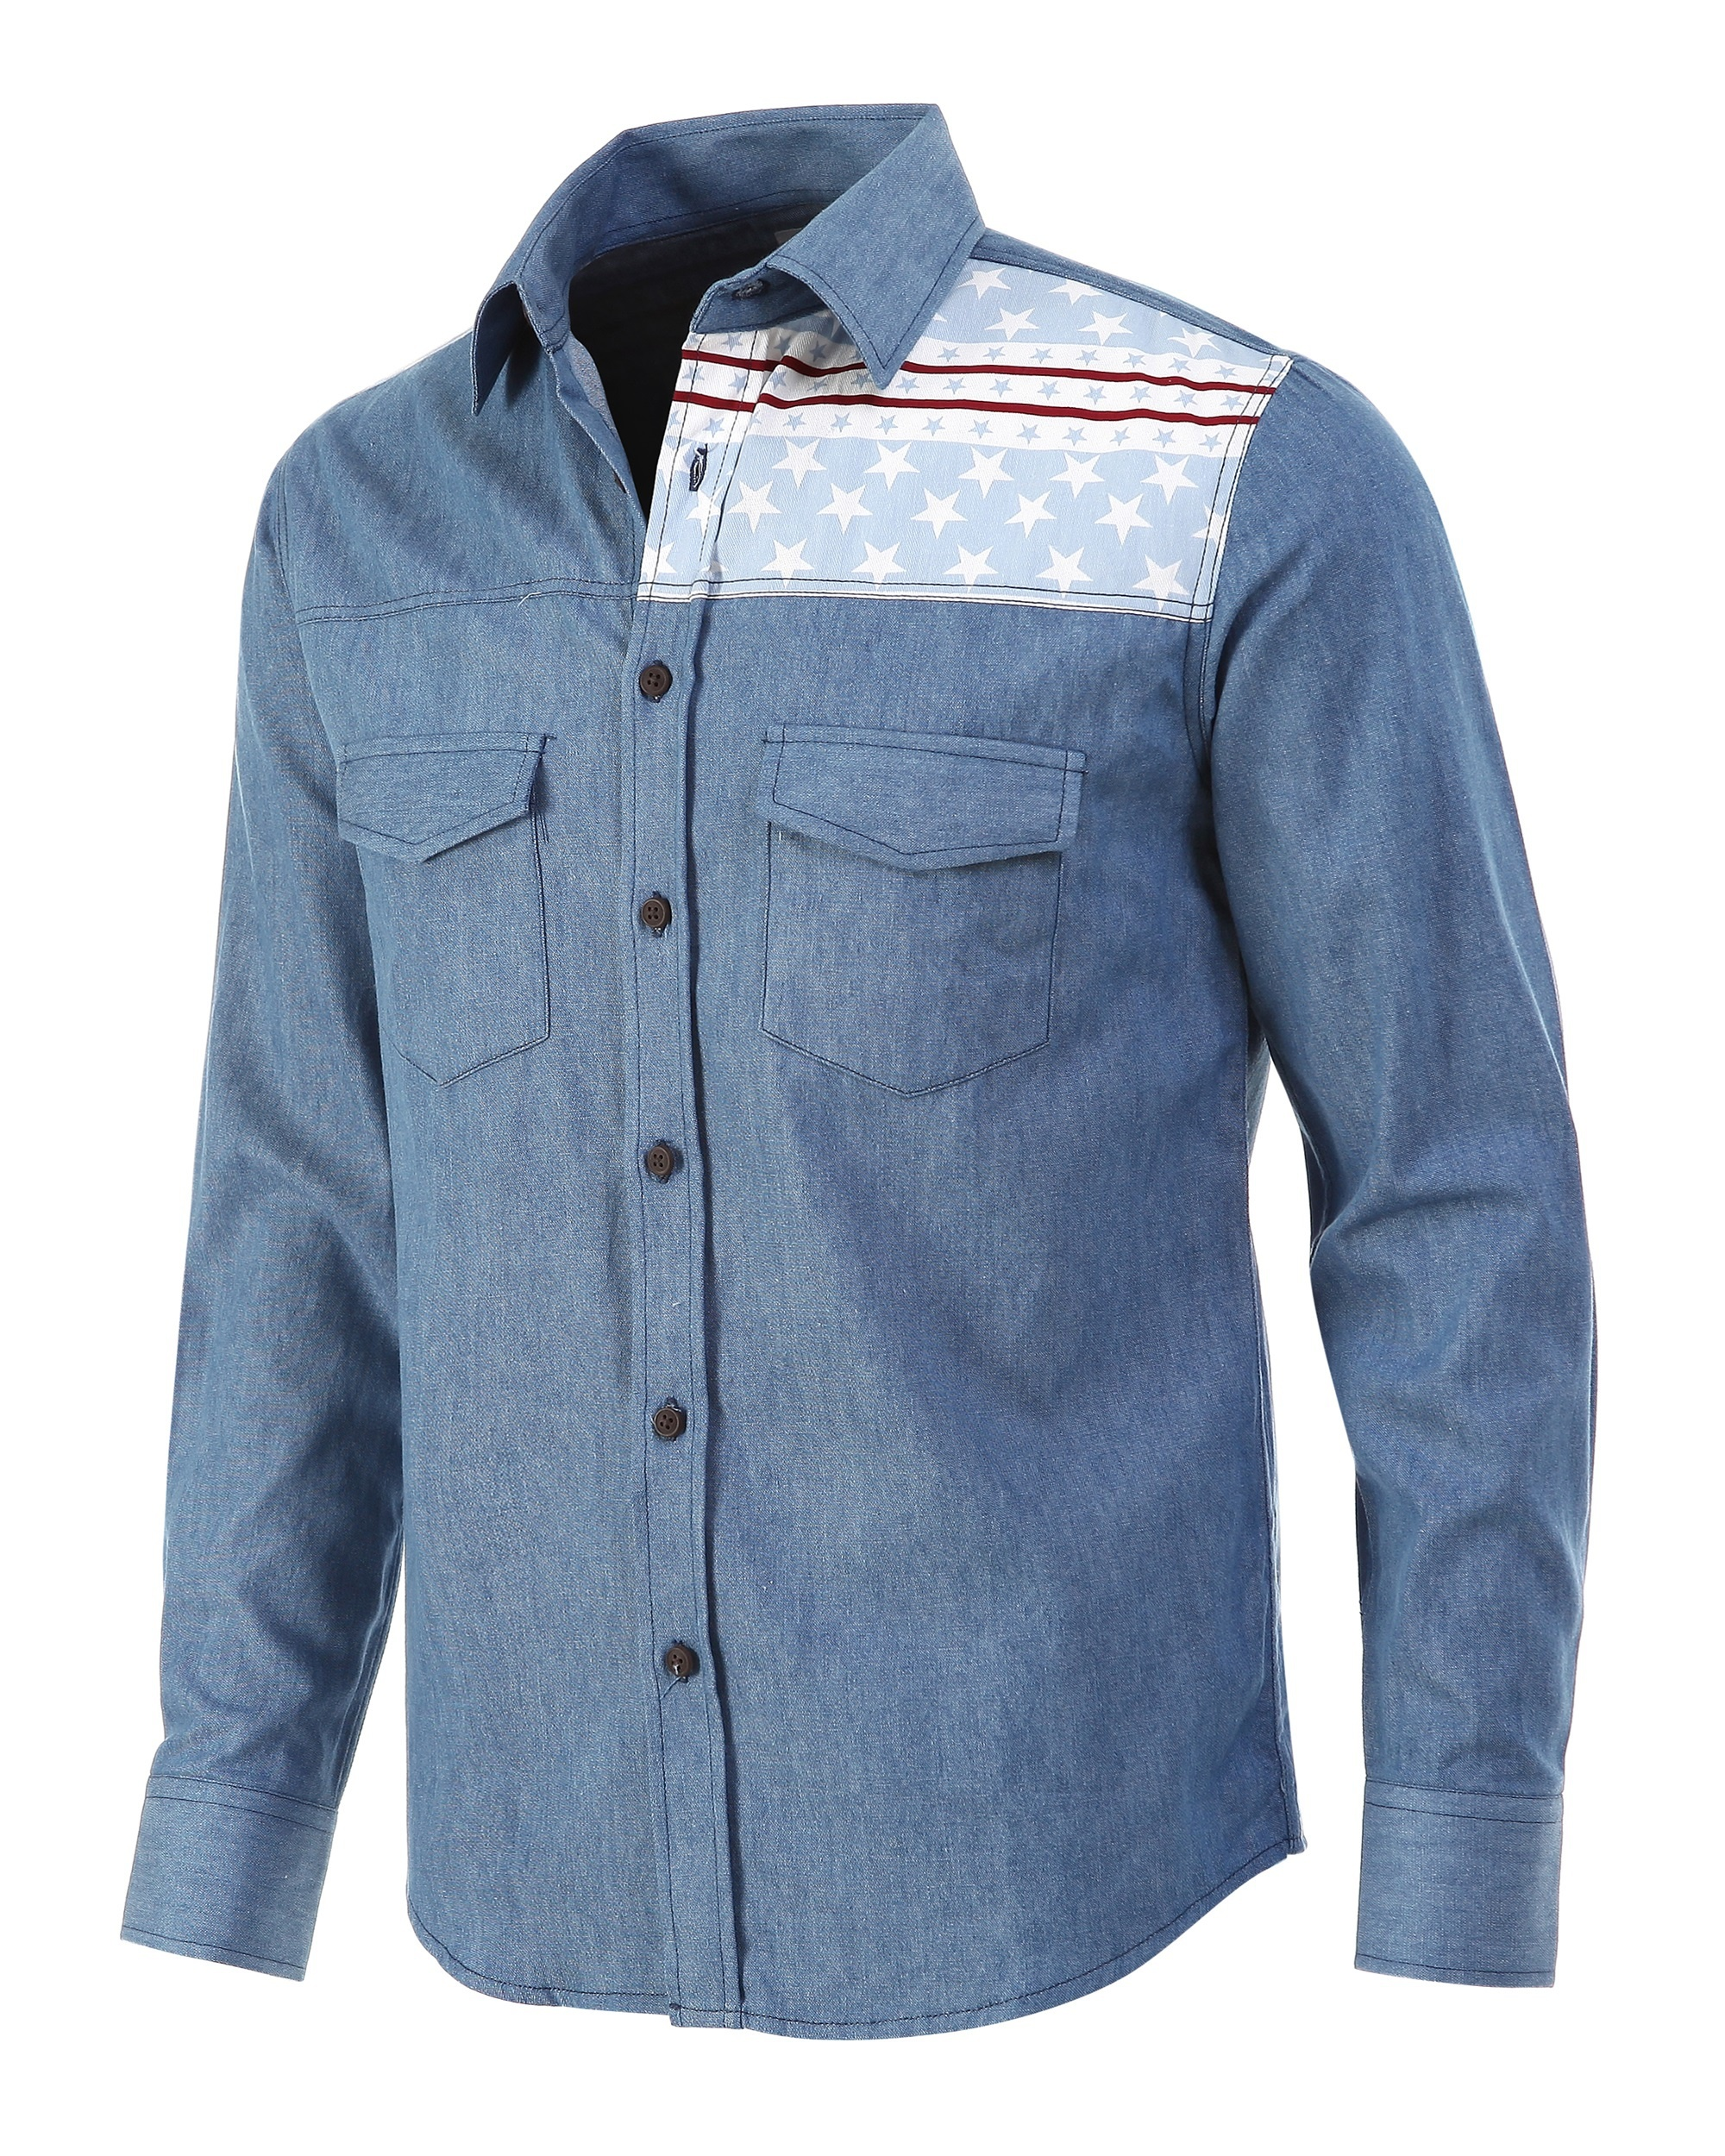 0328b410fc52 actual size. prev next. Mens American Flag Paneled Button-Front Casual  Shirts Slim Fit Long Sleeved Blue